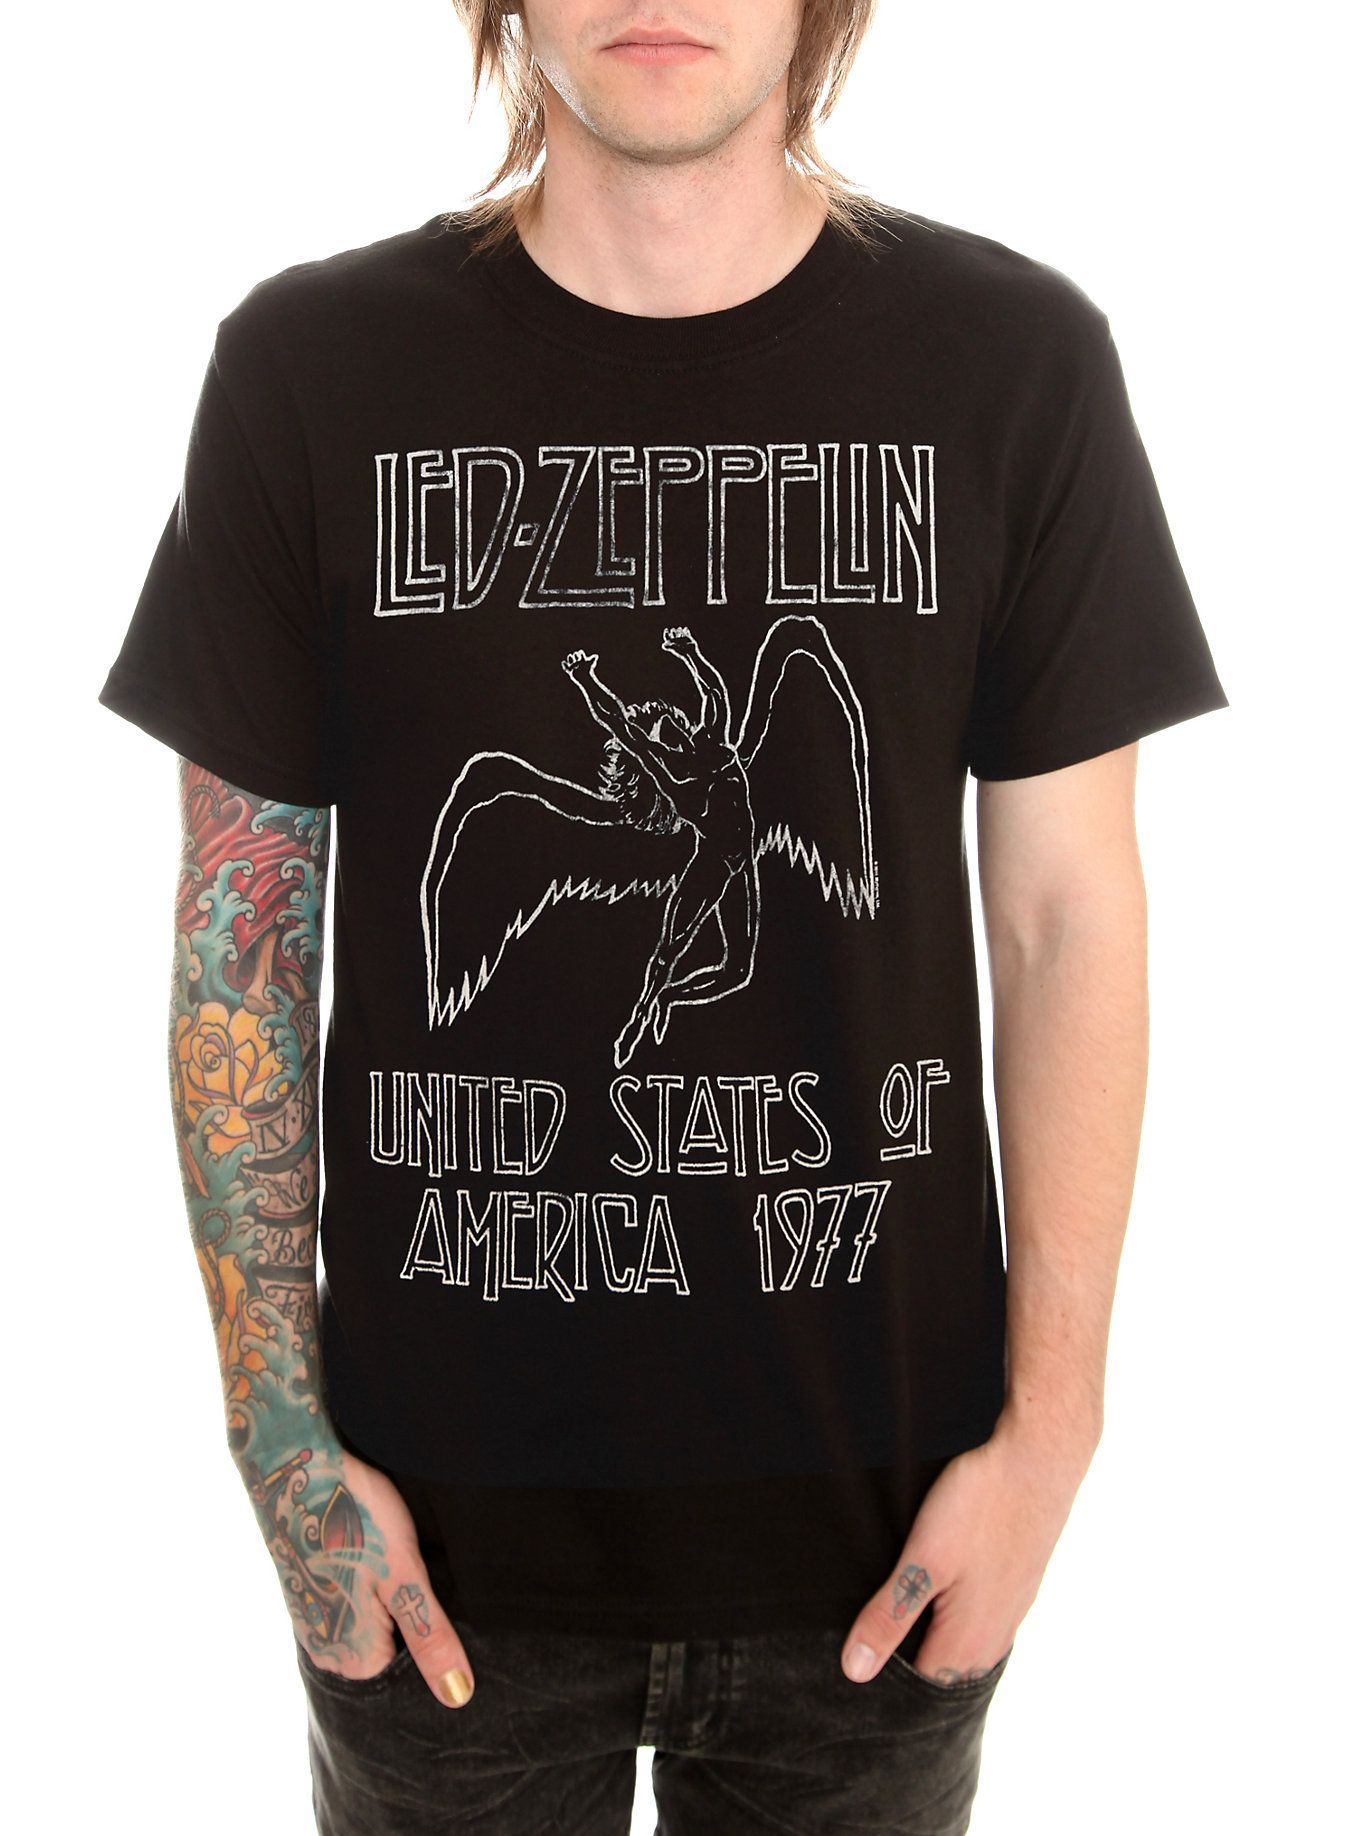 T black shirt rock - Led Zeppelin 1977 T Shirt Hot Topic